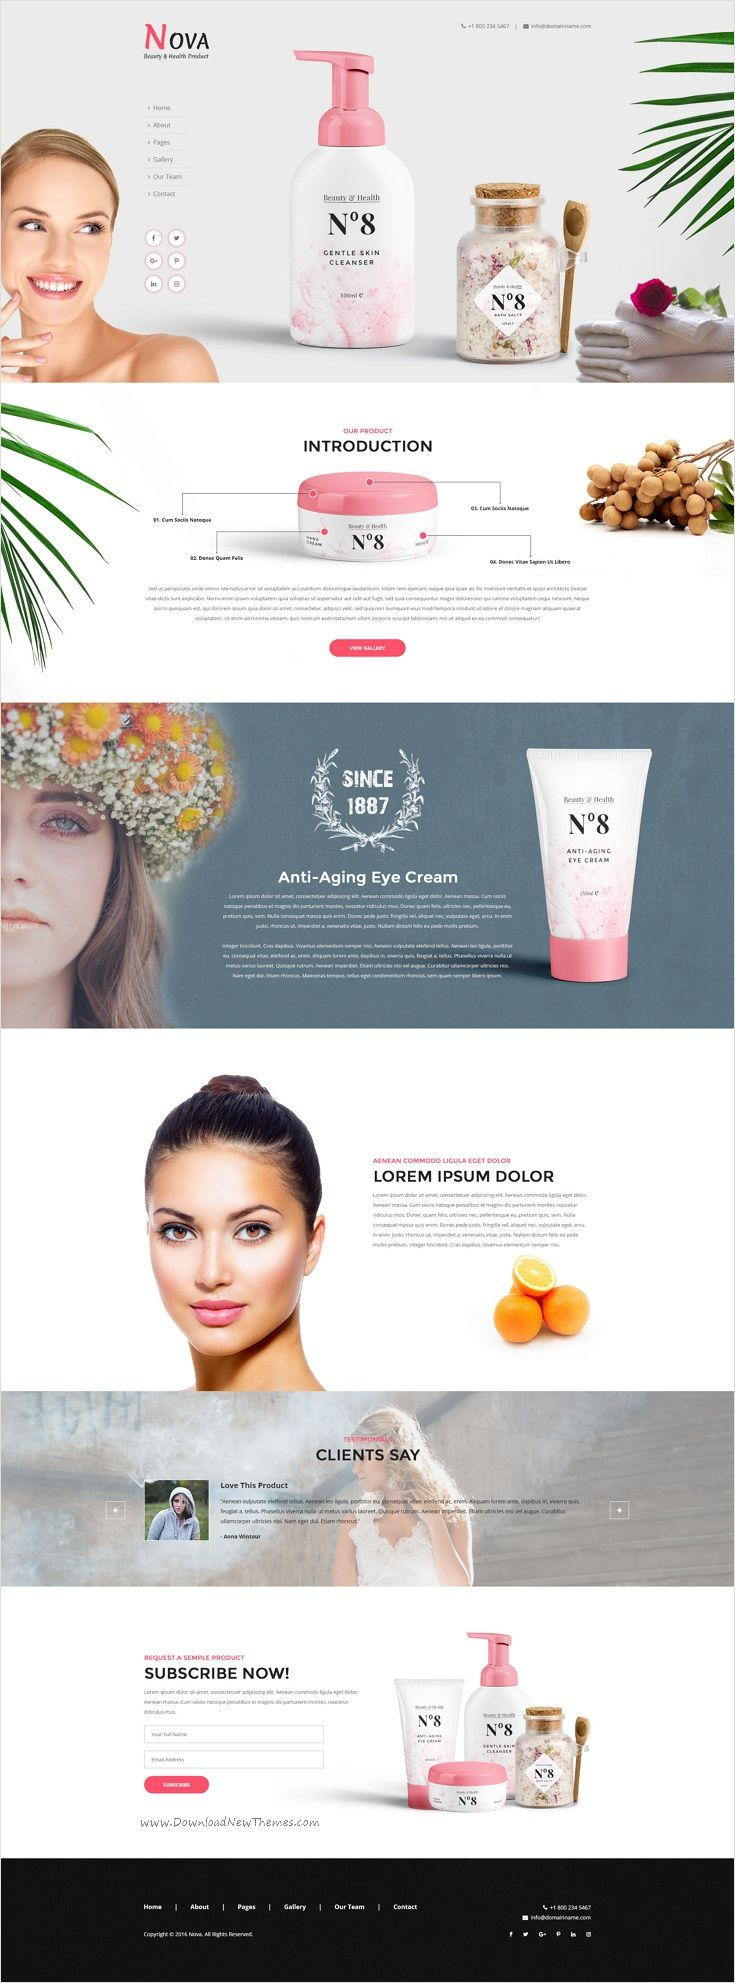 Nova is clean and modern design single #product #PSD #Template for stunning eCommerce website download now➩ https://themeforest.net/item/nova-single-product-psd-template/17457574?ref=Datasata